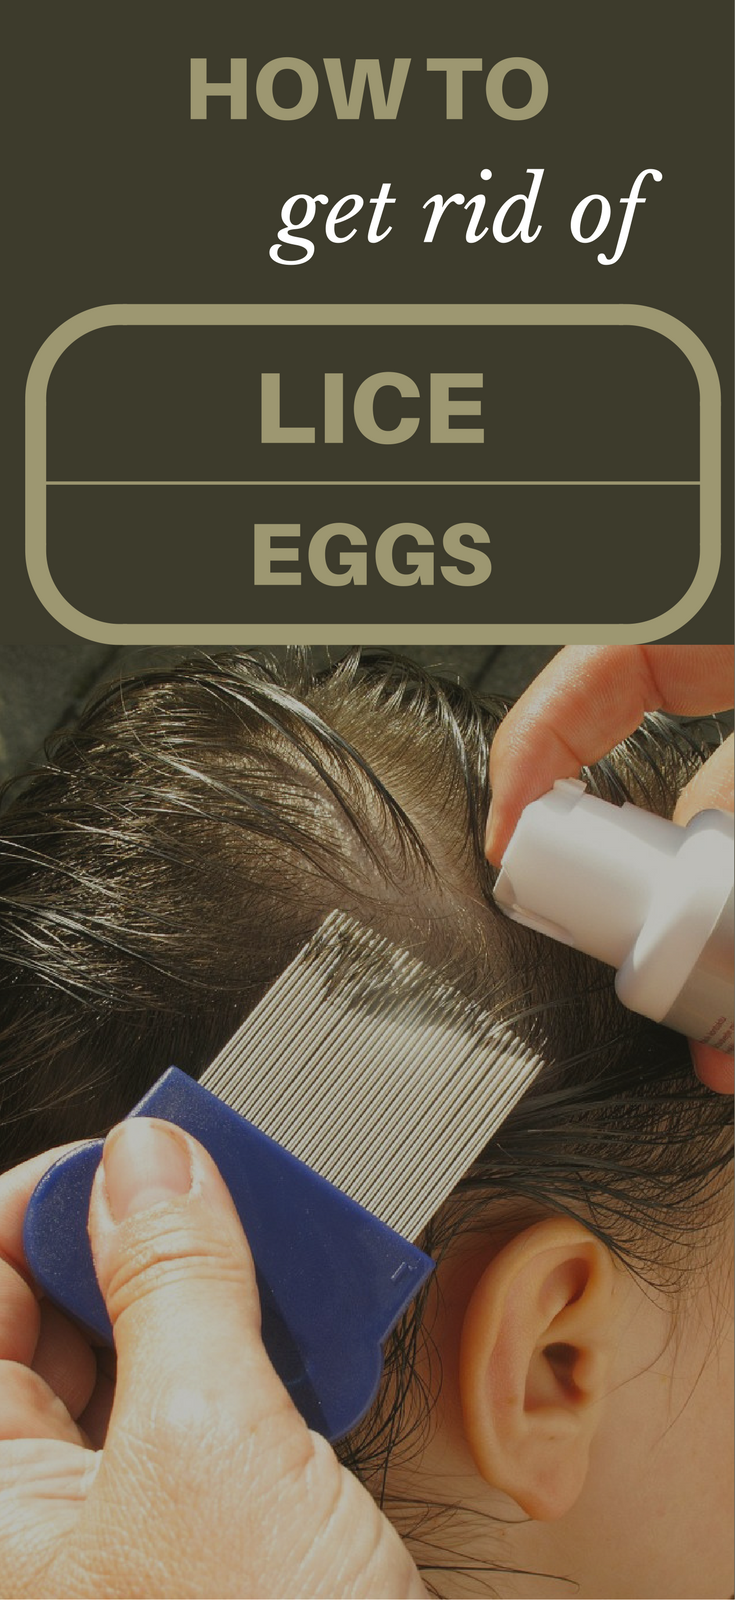 How To Get Rid Of Lice Eggs TopCleaningTipscom